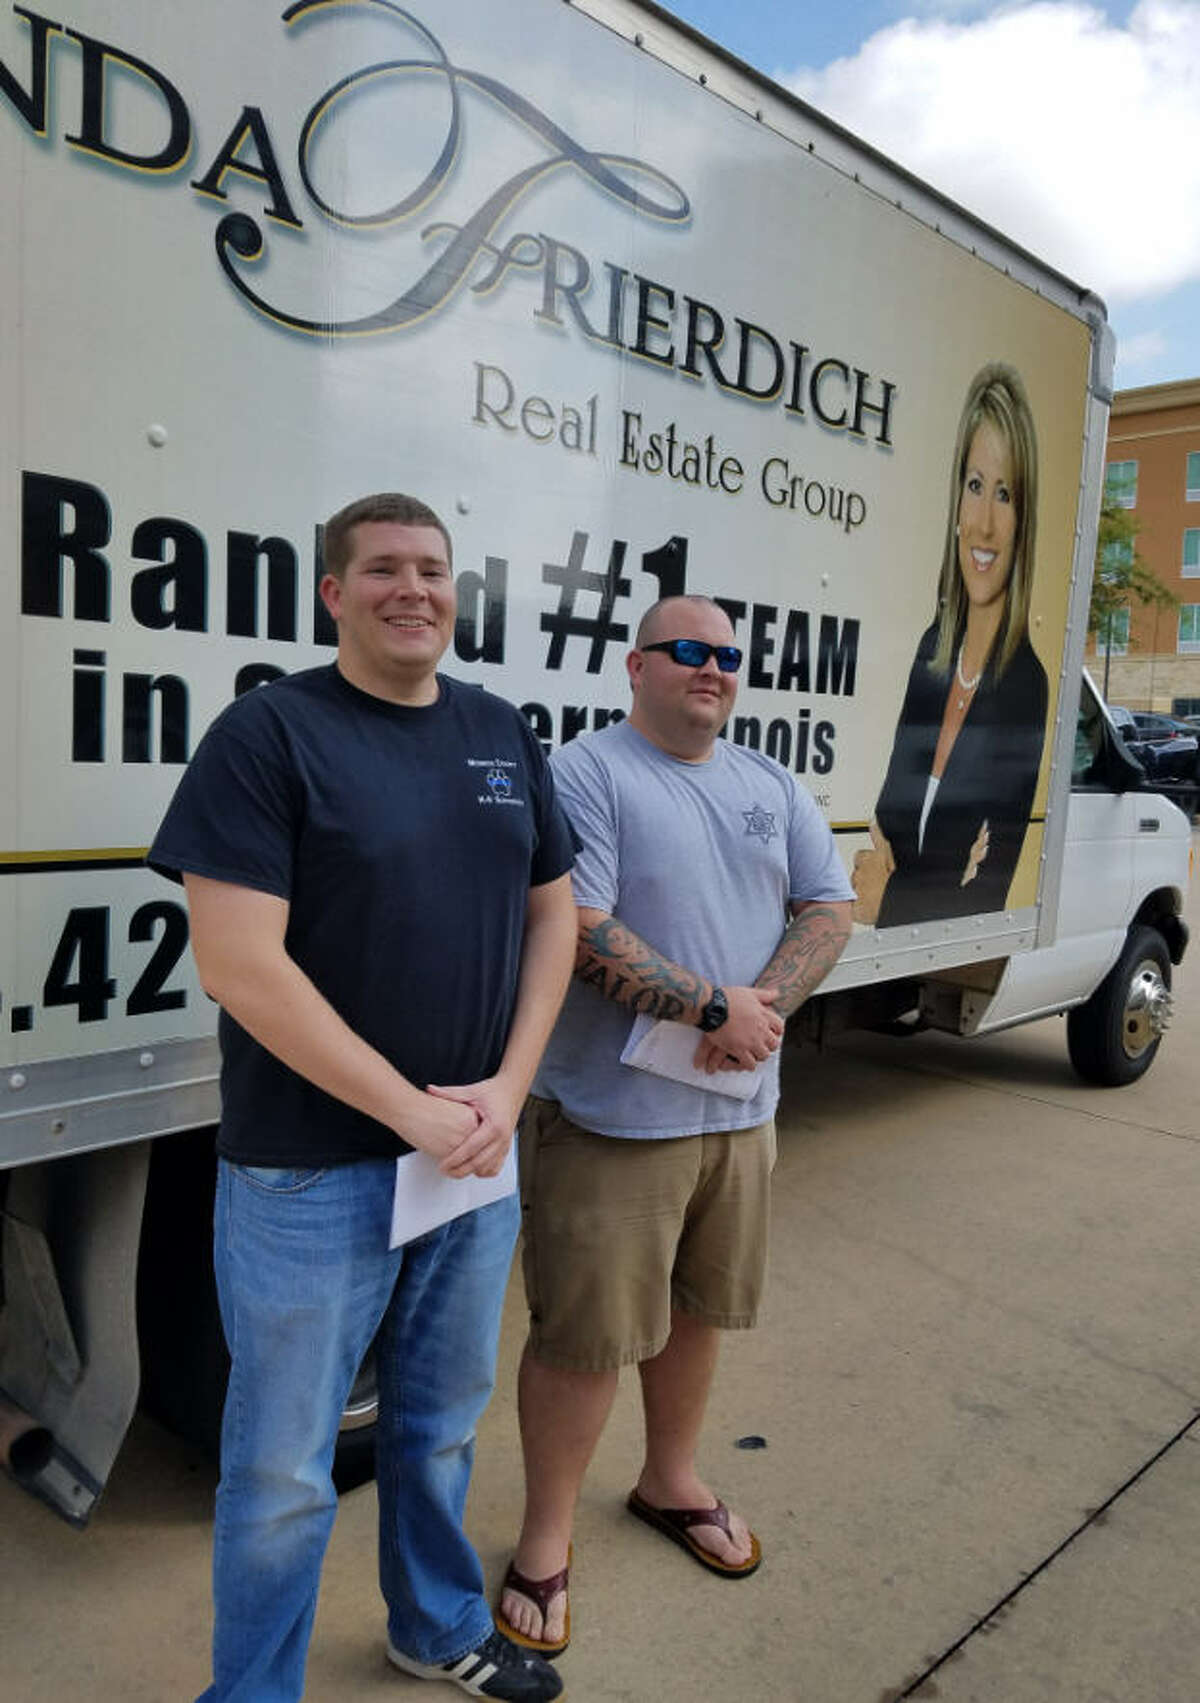 Century 21 The Linda Frierdich Real Estate Group of Smithton, Ill., collected donations for Hurricane Harvey victims and donated them to the Katy Lions Club for distribution. Monroe County Sheriff's officers Ben Ettling and Russ Brafford drove the truck of donations on Sept. 15 from Illinois to Katy.